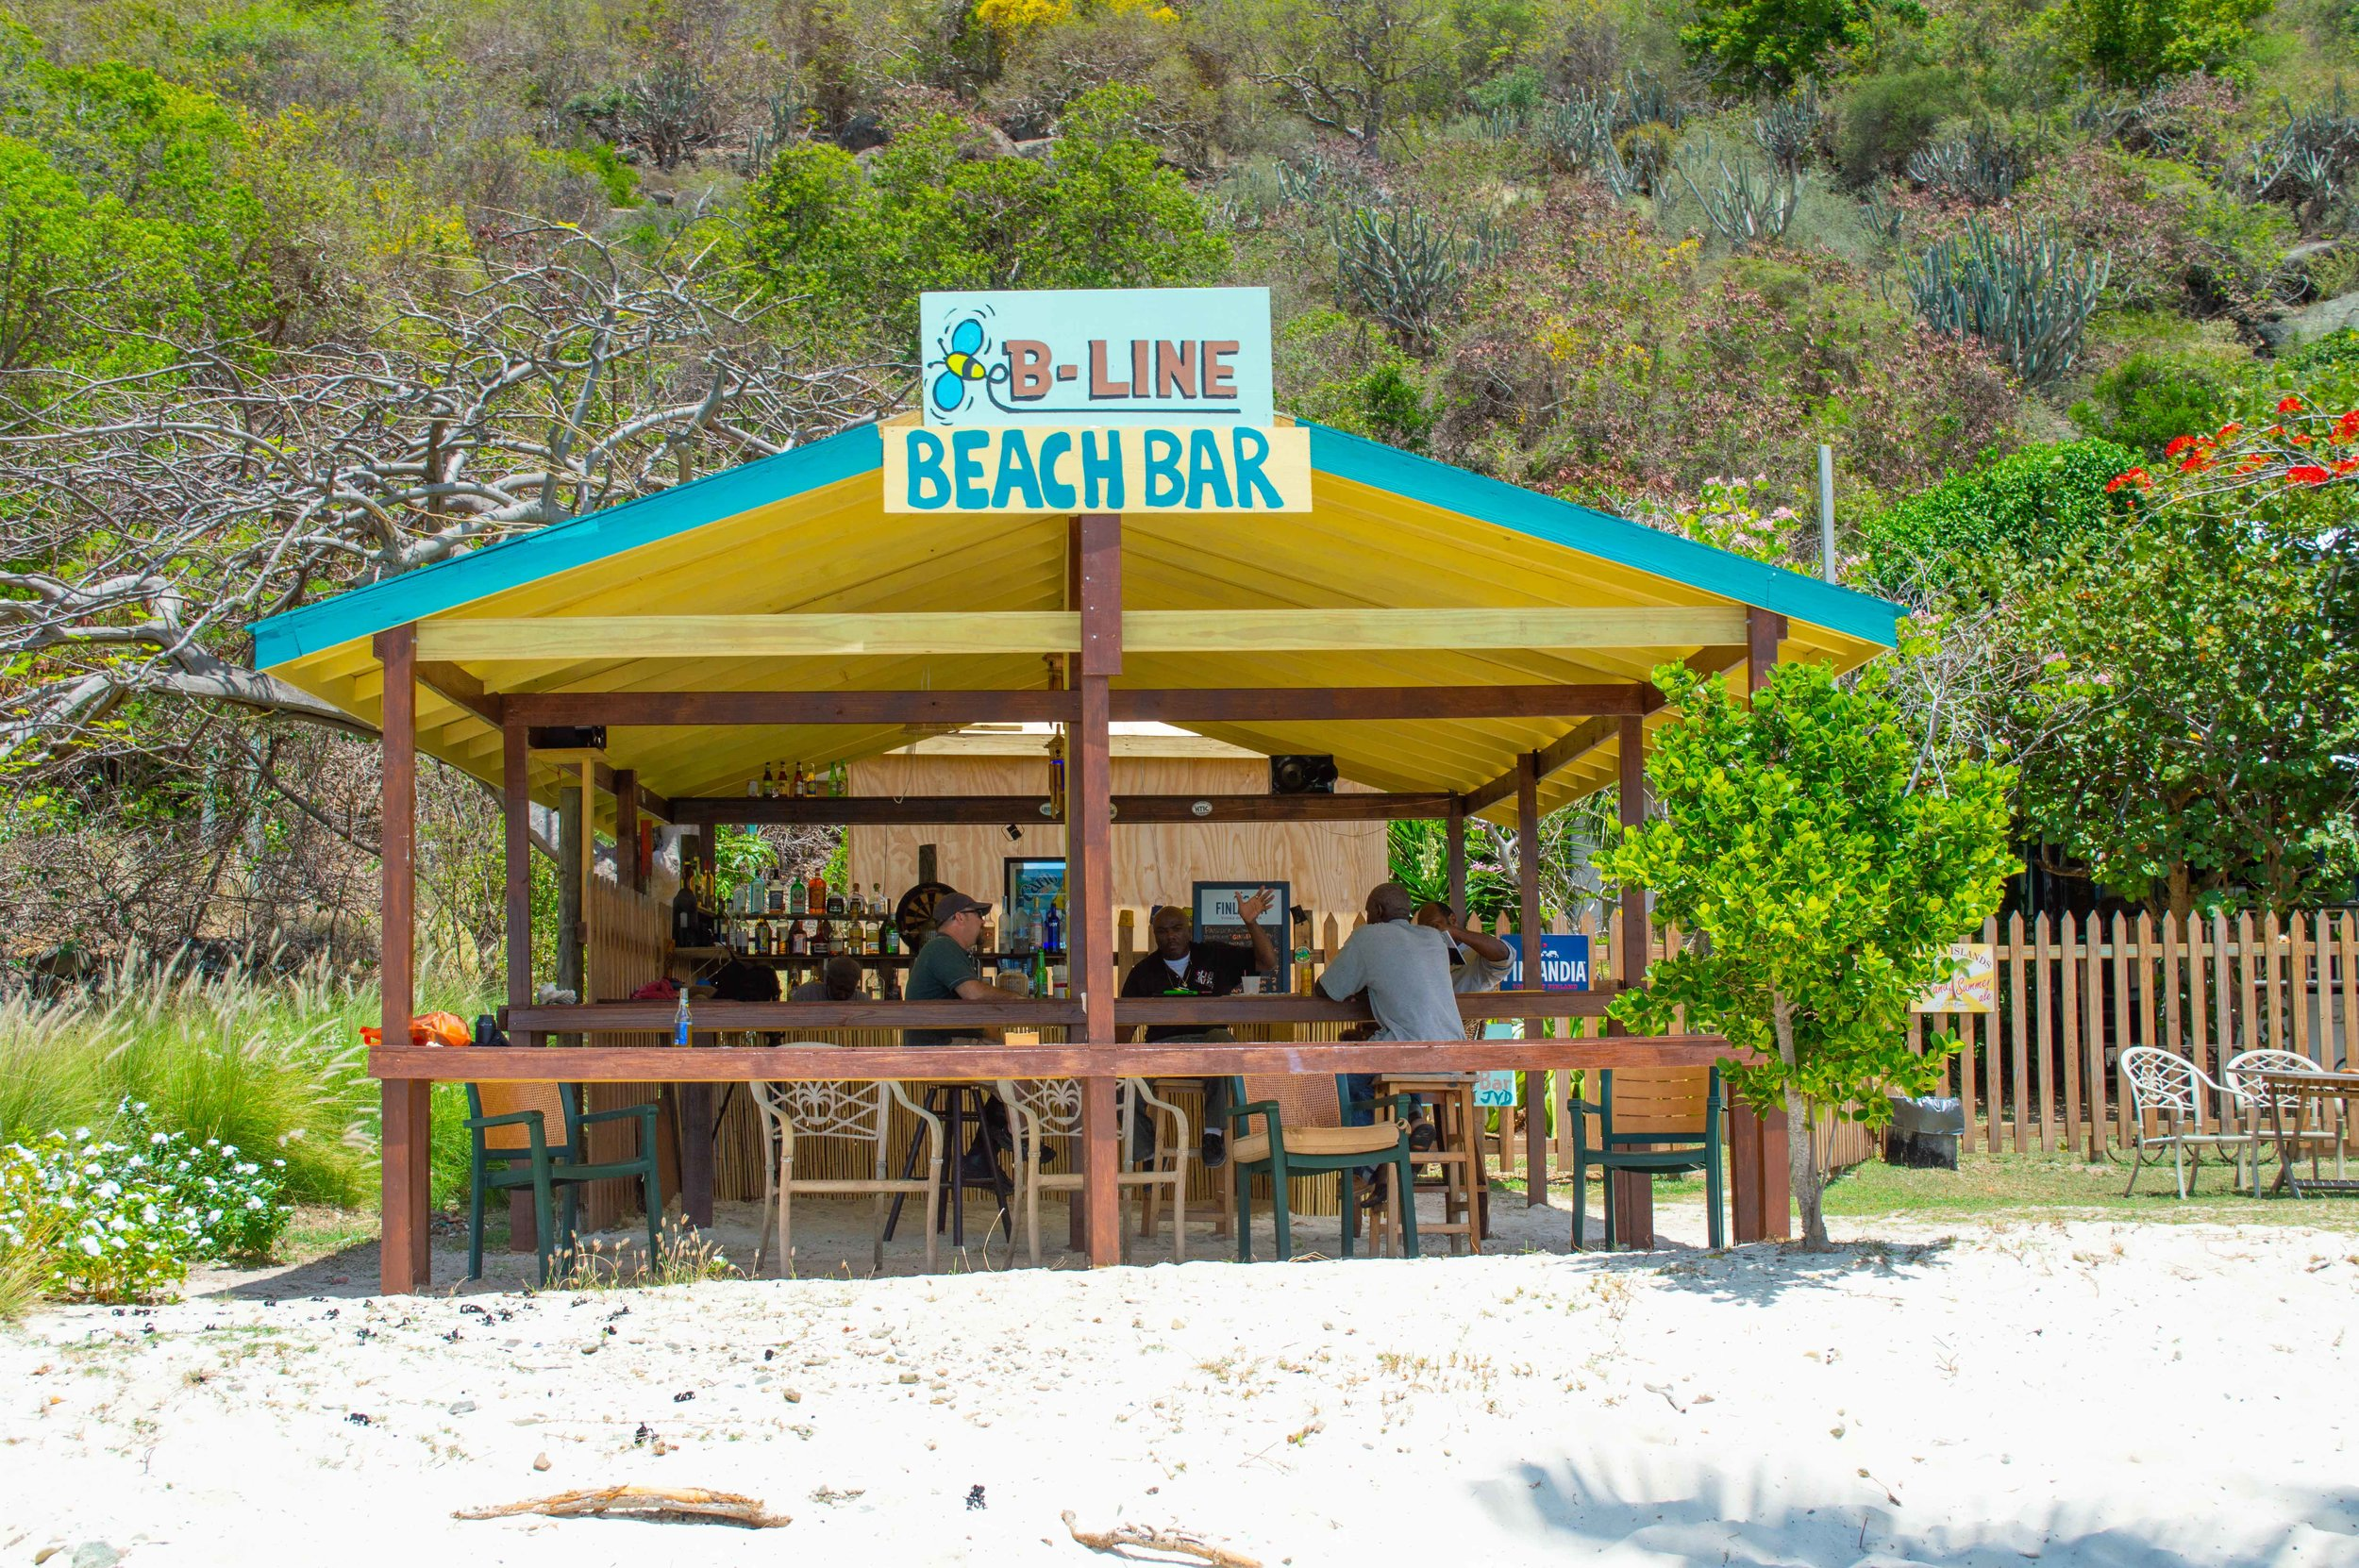 B-Line Beach Bar - A fairly new beach bar, B-Line Bar is located on Little Jost Van Dyke. Guests usually end up at the B-Line after renting a dinghy from Jost Van Dyke SCUBA. It's a great place to re-charge after exploring Sandy Cay and Sandy Spit. Order their popular